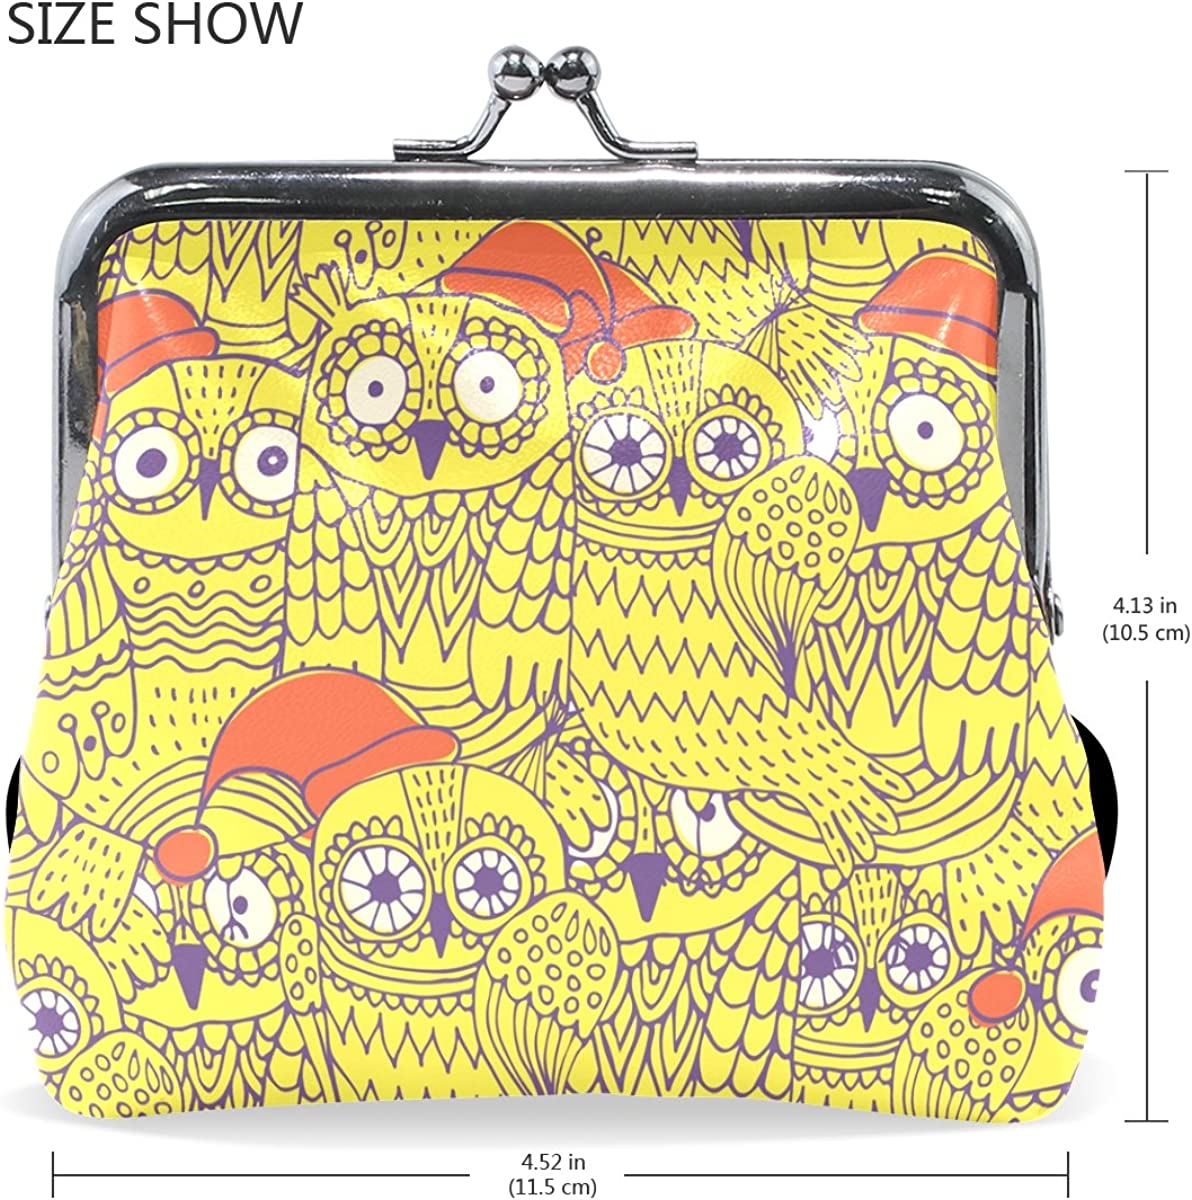 Sunlome Owls Coin Purse Change Cash Bag Small Purse Wallets for Women Girl